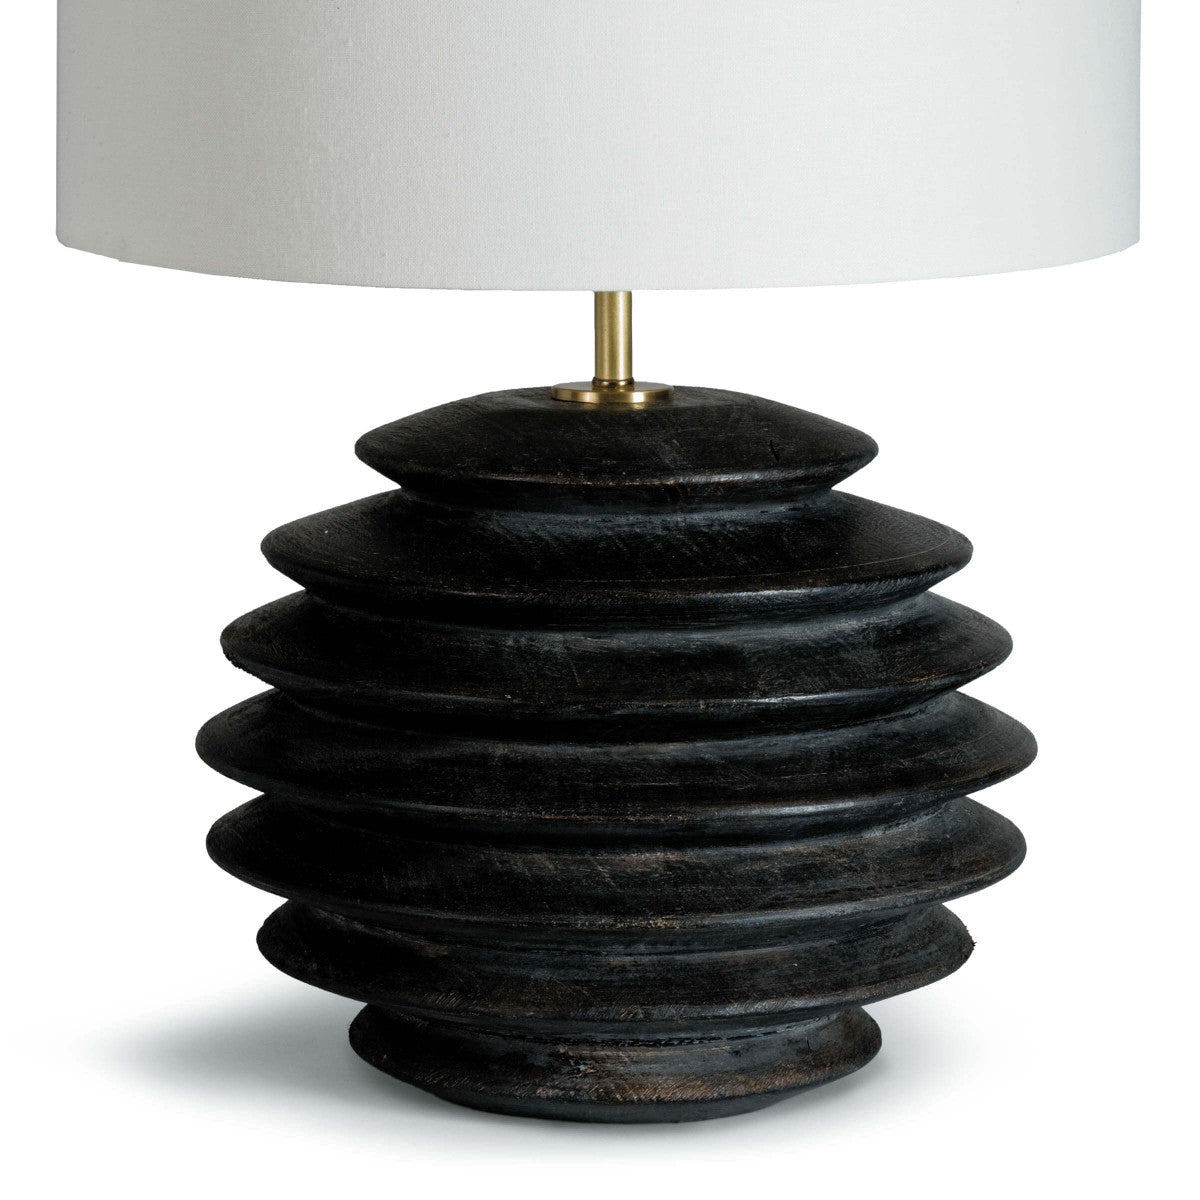 Accra Round Table Lamp